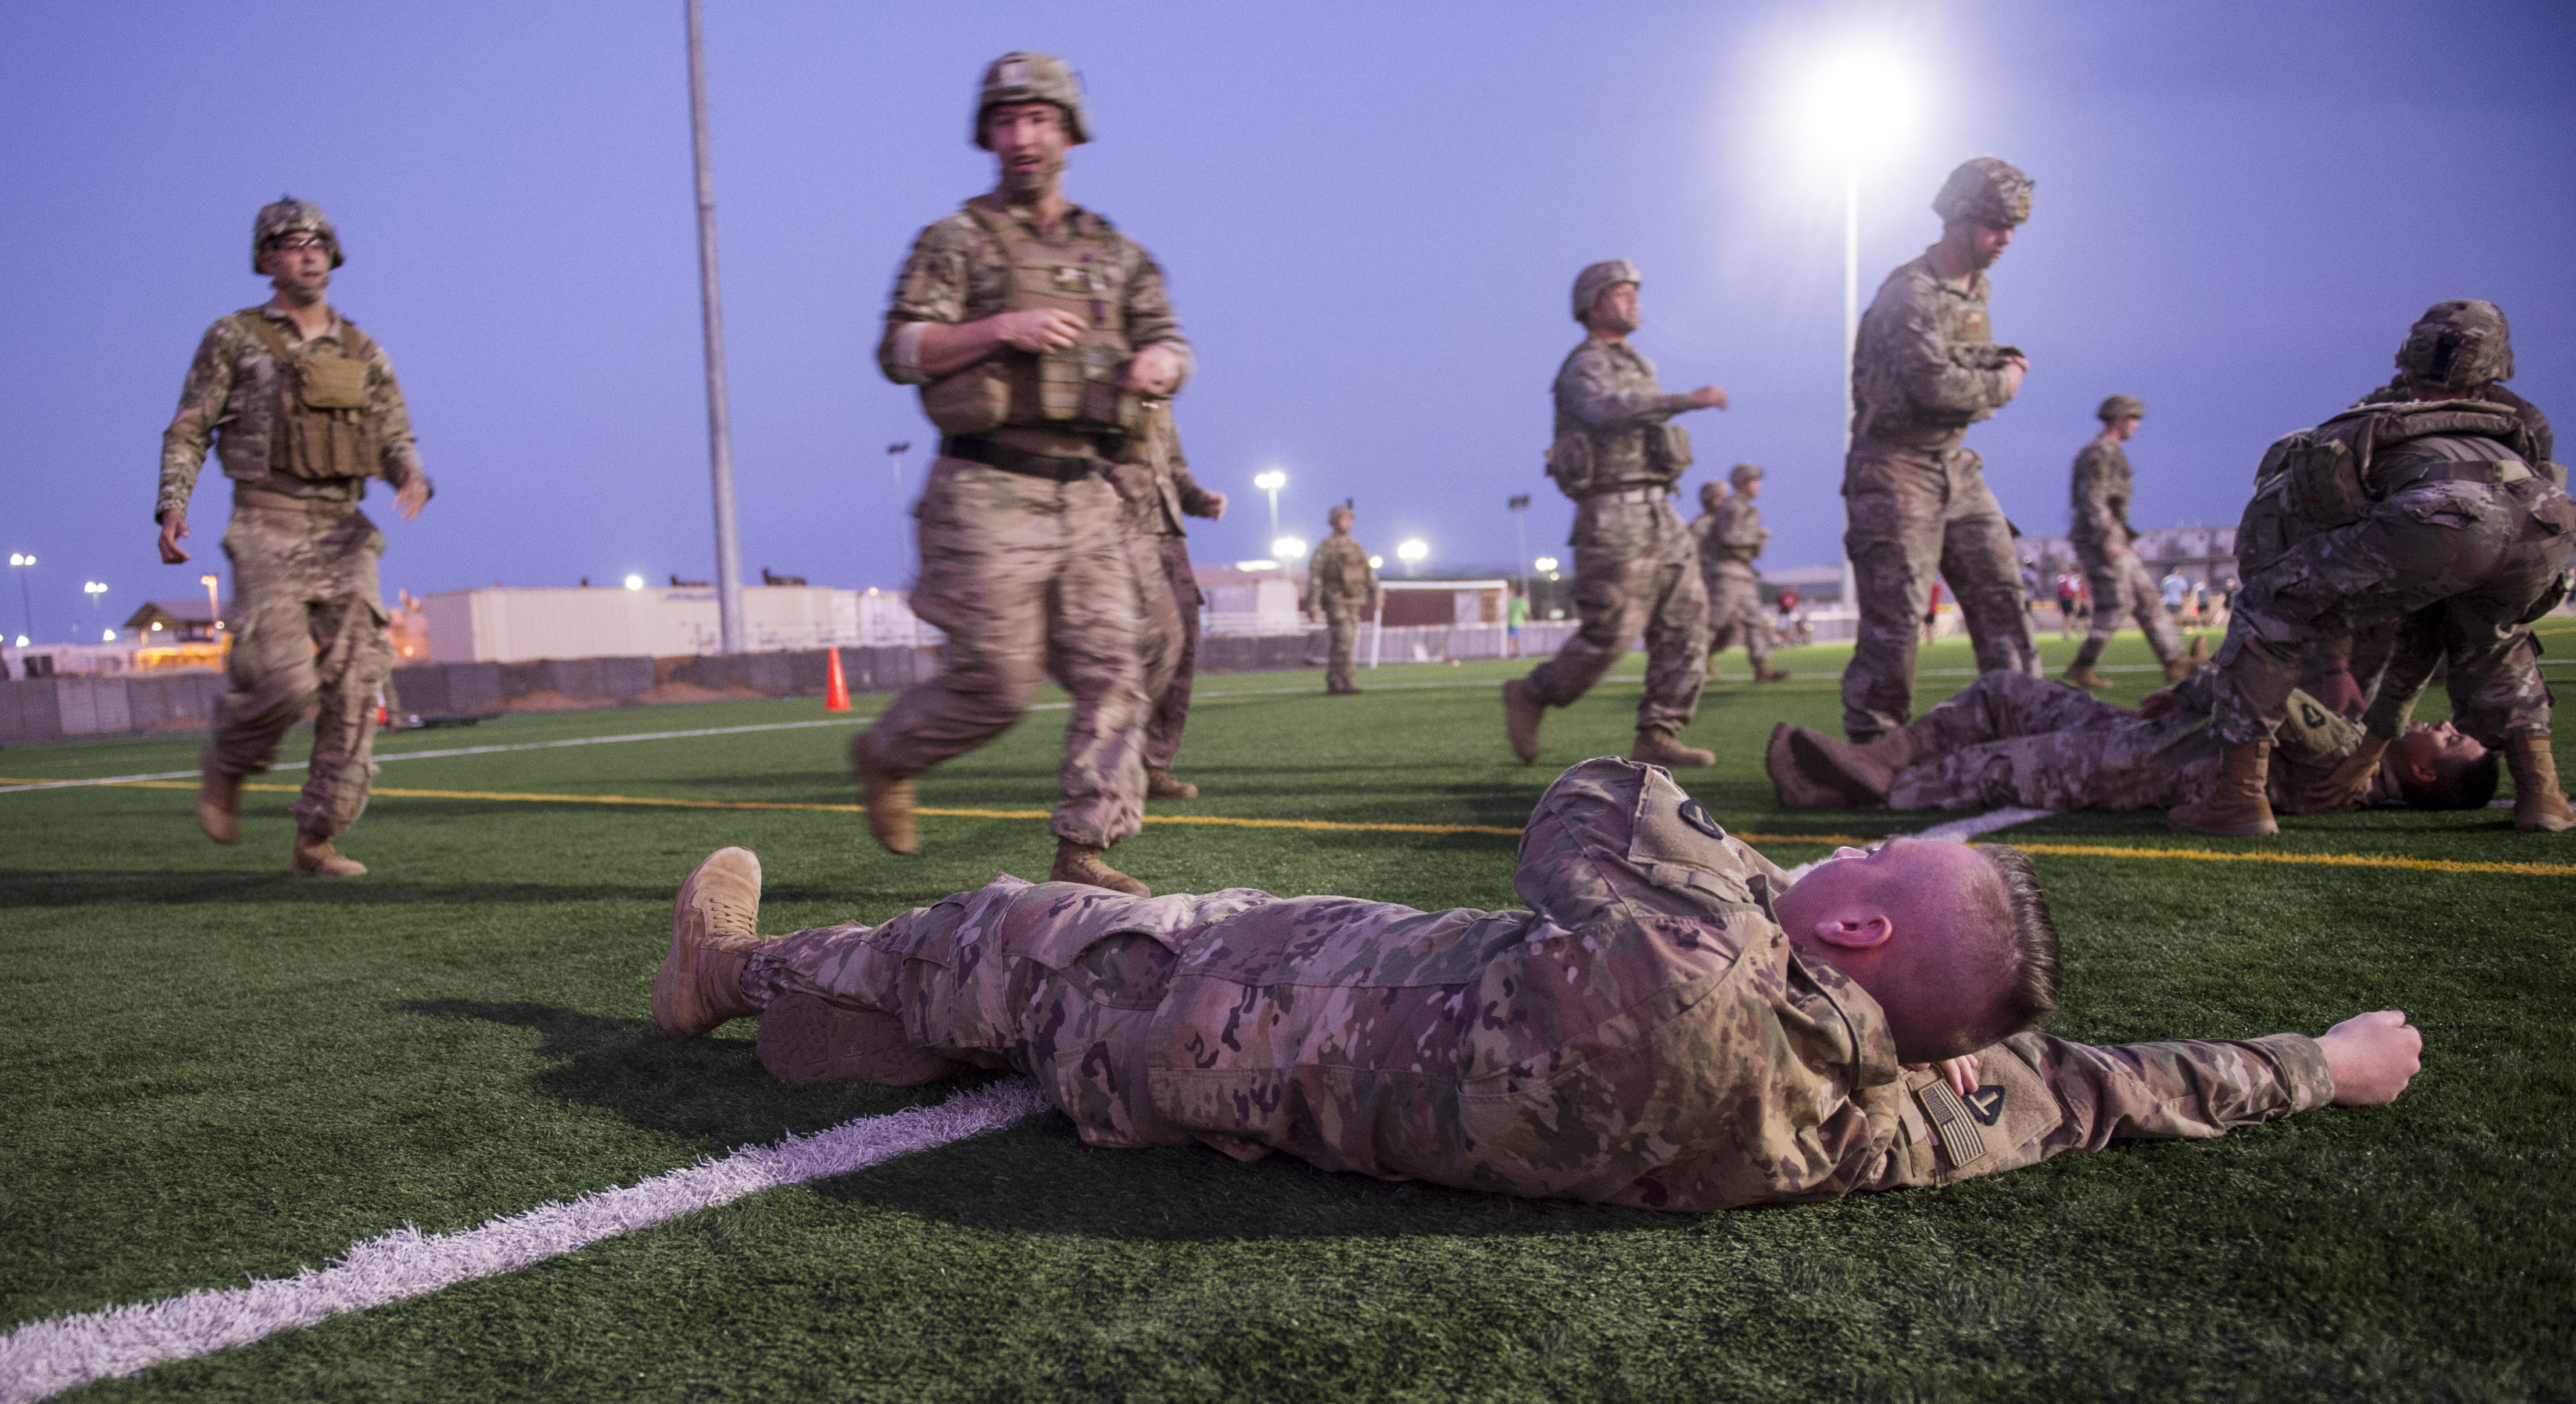 U.S. Army site security team Soldiers assigned to Task Force Bayonet, Combined Joint Task Force - Horn of Africa, move to assess and transport simulated casualties during a Combat Lifesaver (CLS) training event at Camp Lemonnier, Djibouti, Dec. 30, 2017. Participants demonstrated CLS principals while in care under fire, tactical field care, and tactical evacuation care scenarios. (U.S. Air Force photo by Staff Sgt. Timothy Moore)